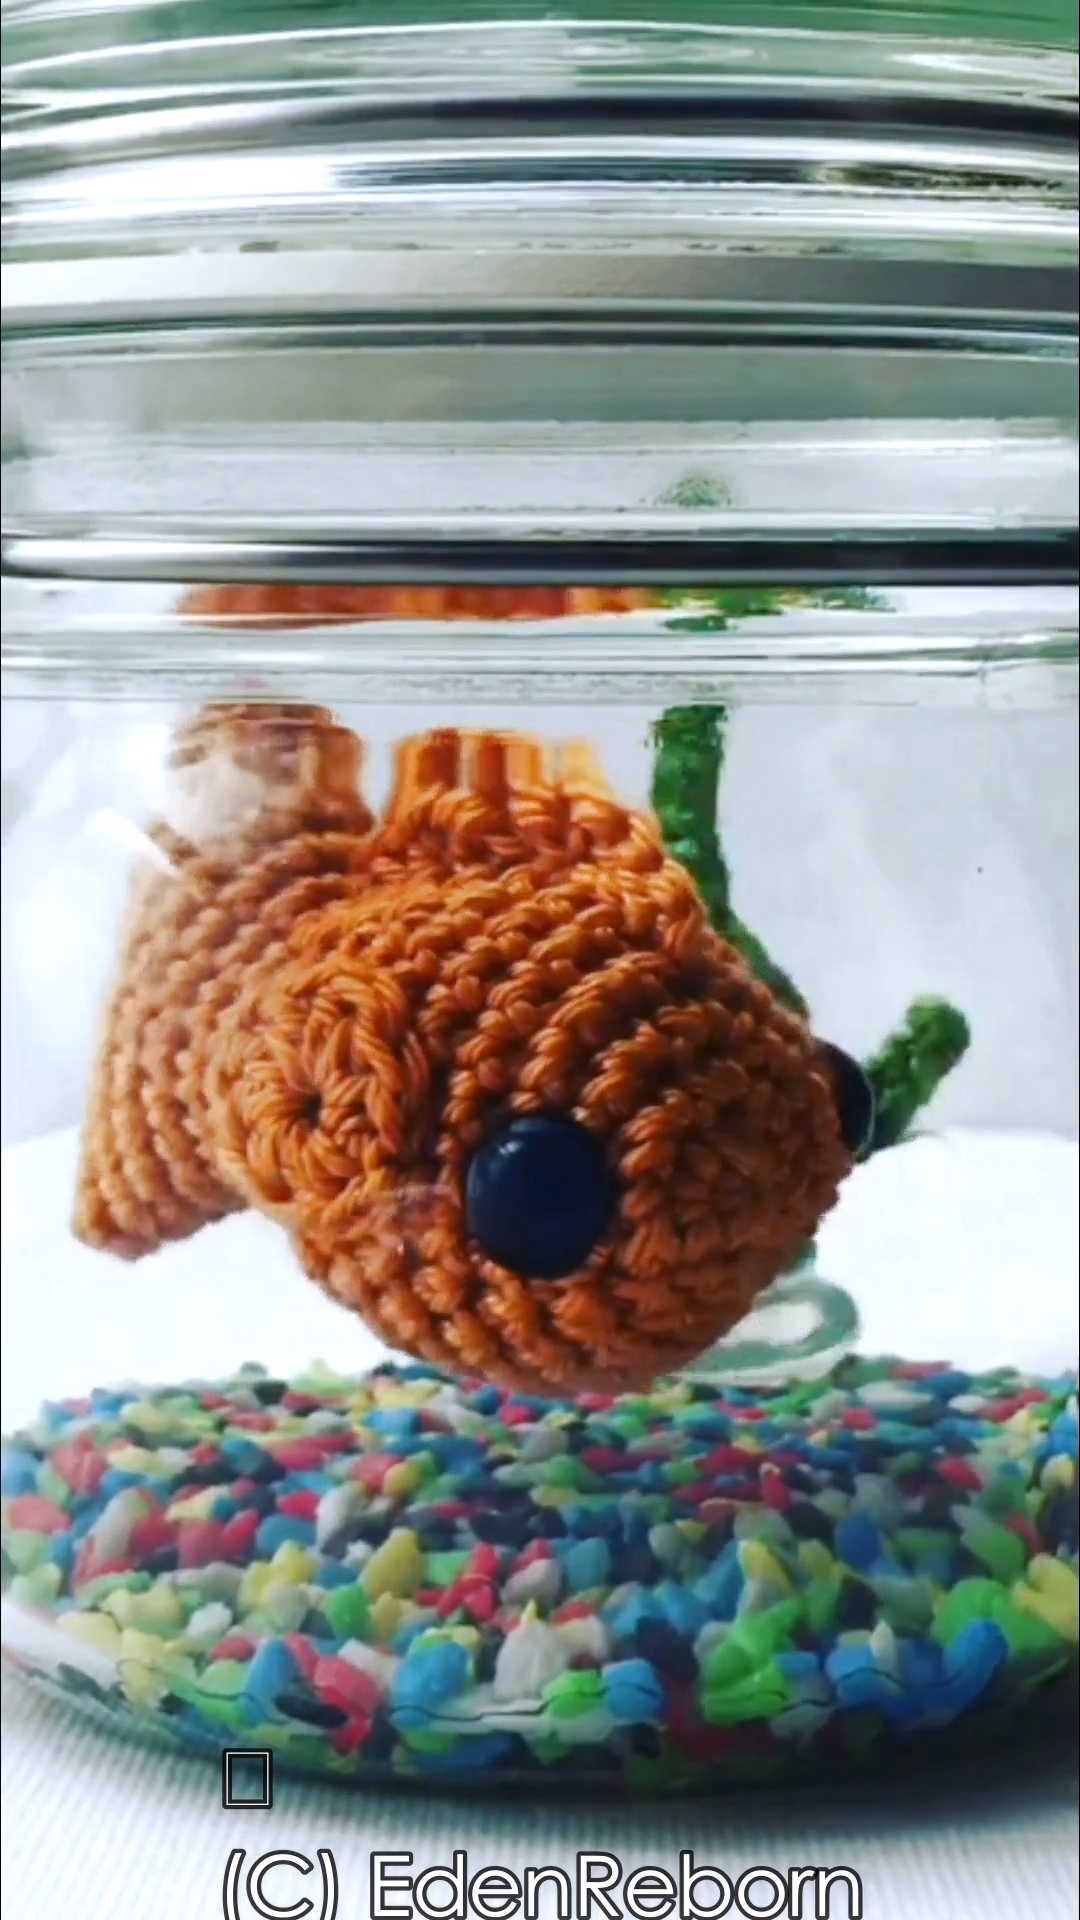 Photo of Crochet Fish in a Jar